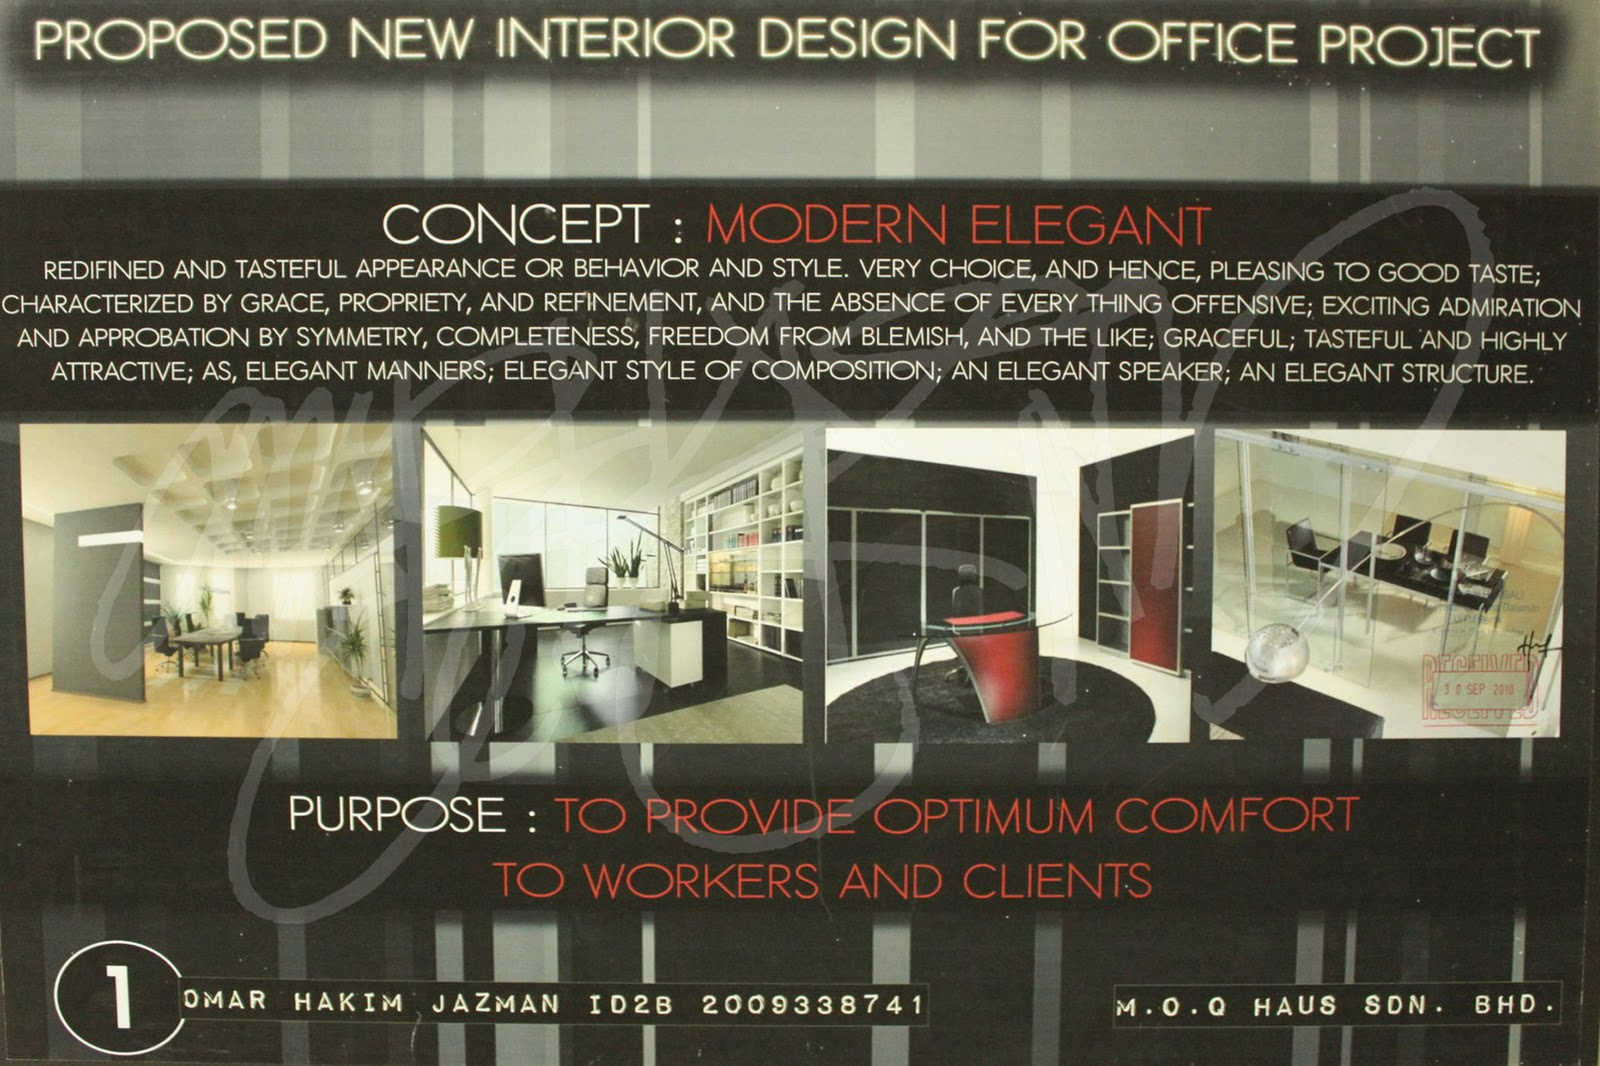 Learning Future Interior Designer: Office Design, Moqhaus Sdn Bhd